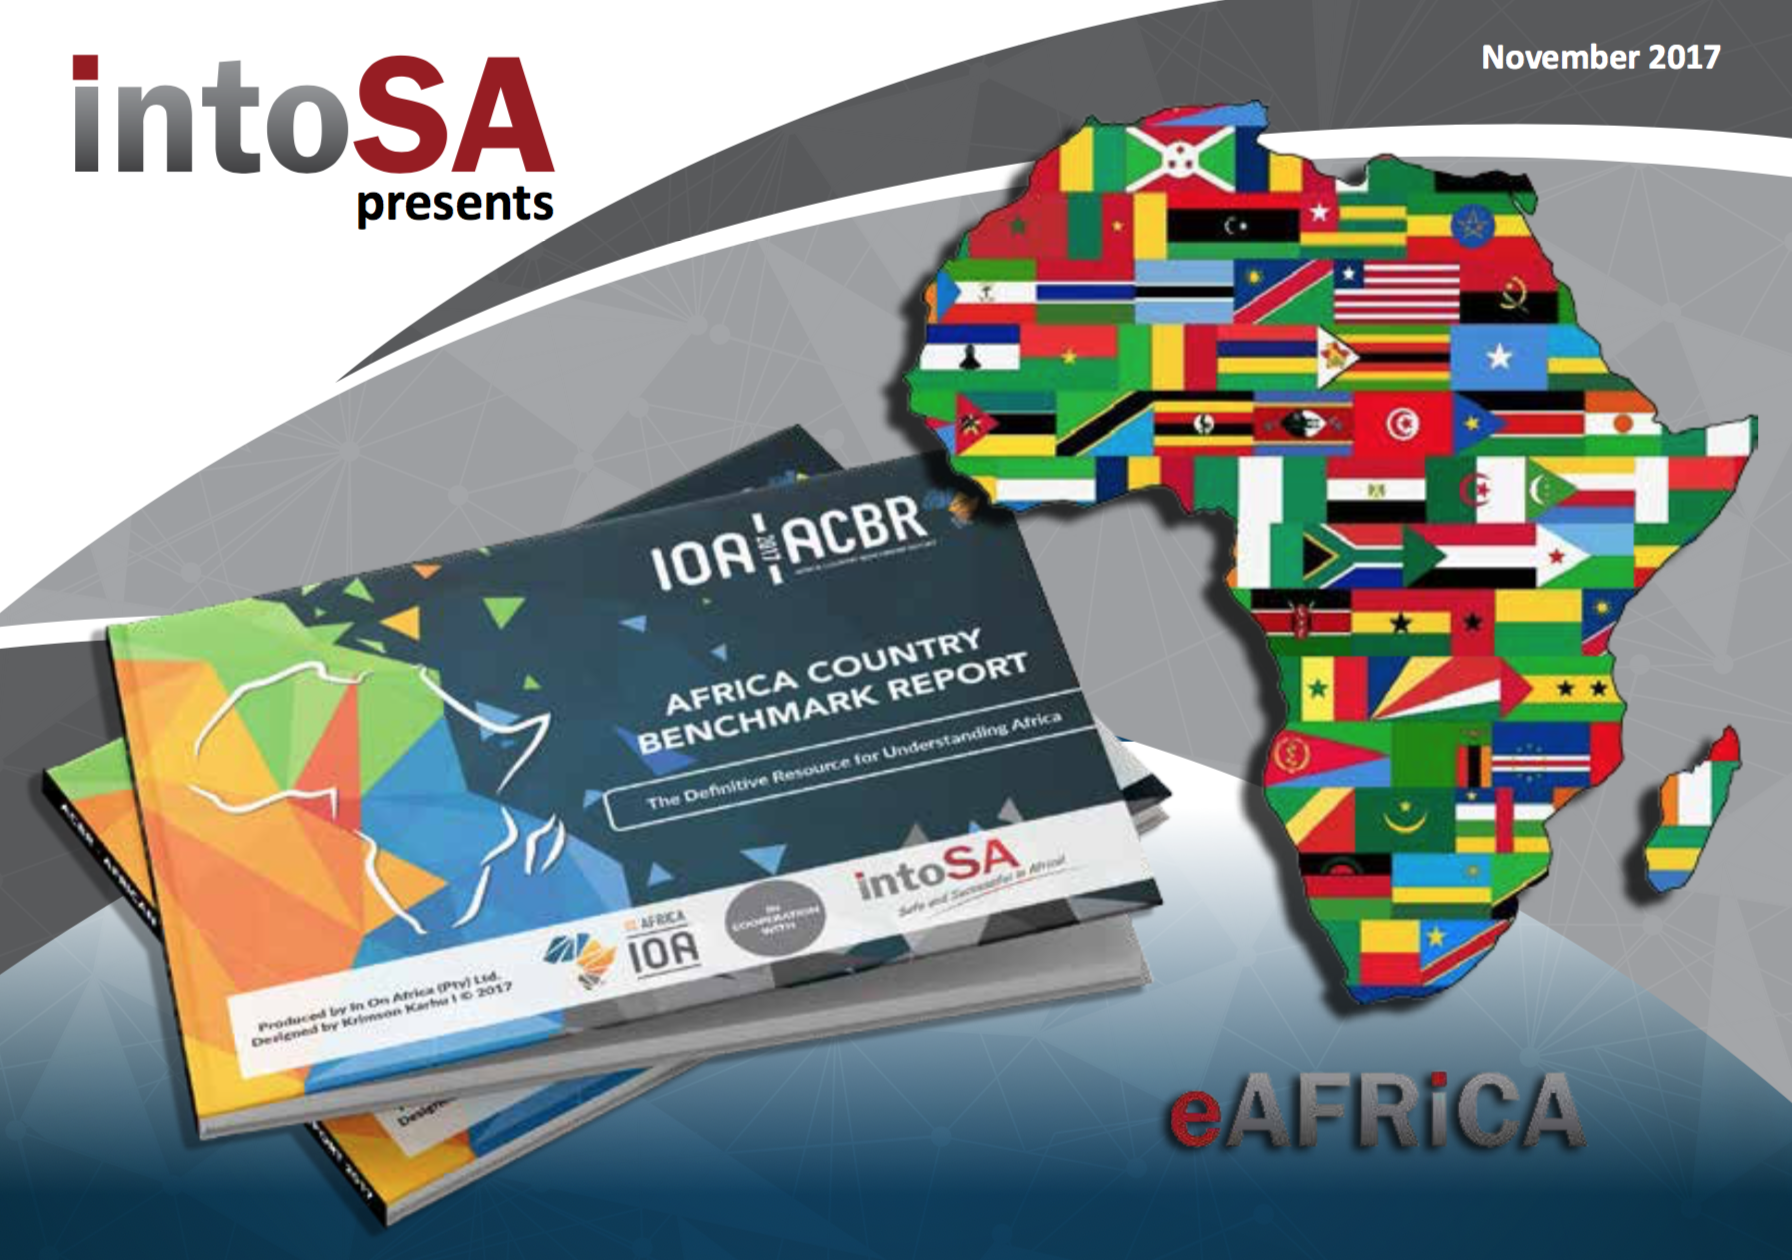 Into SA presents African Country Benchmark Report